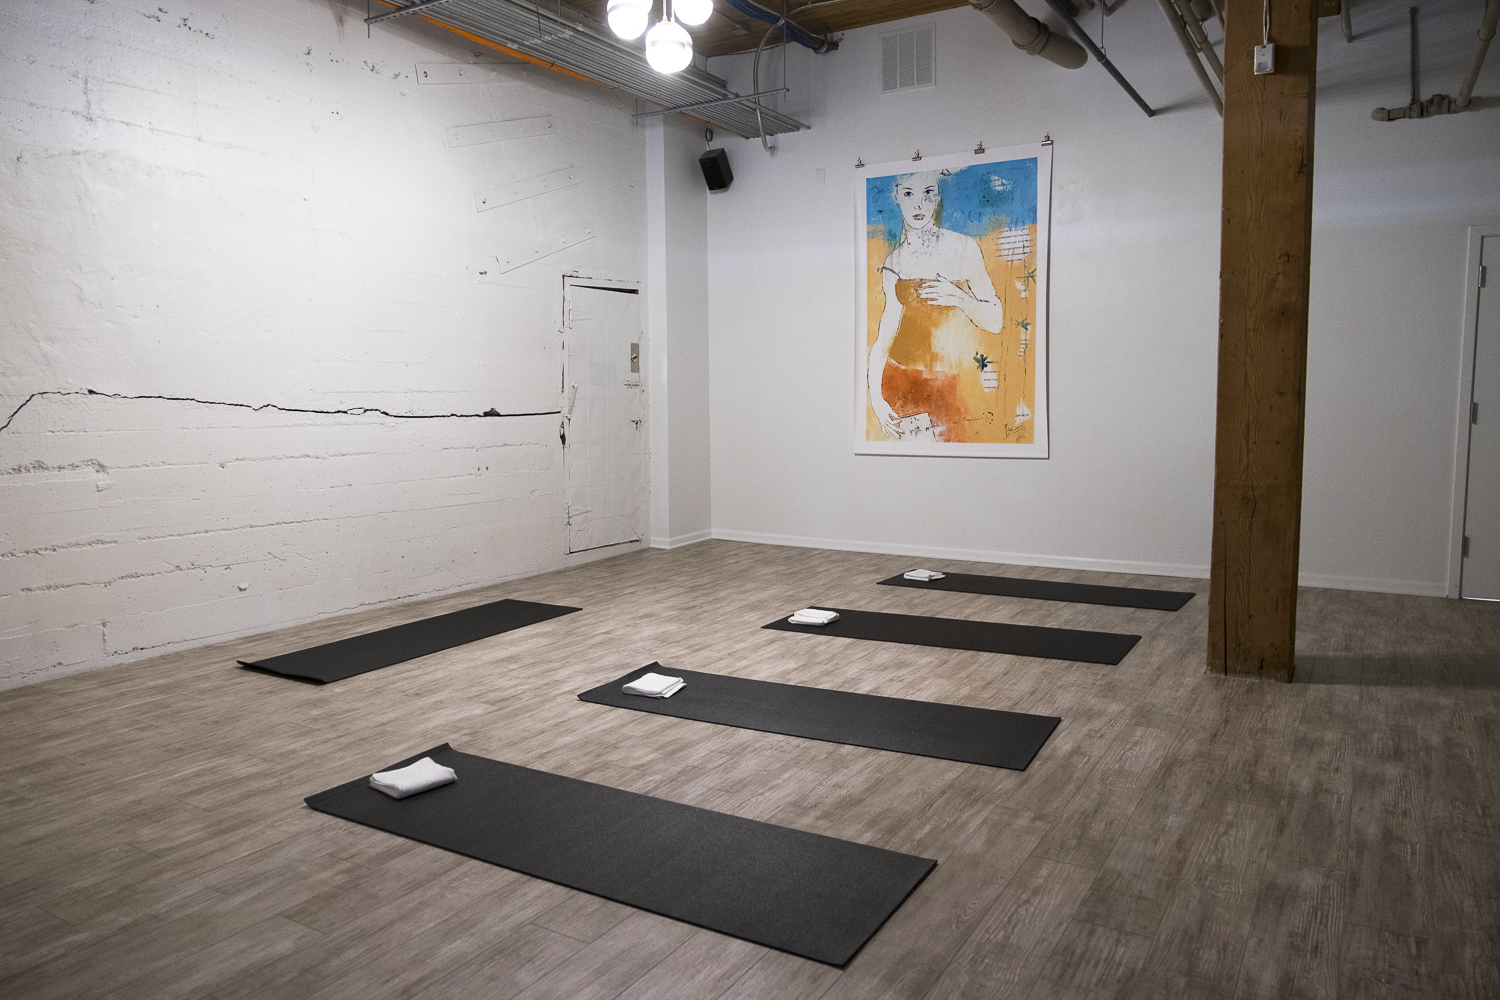 Yoga studio at The Riveter (Image: Paola Thomas/Seattle Refined)